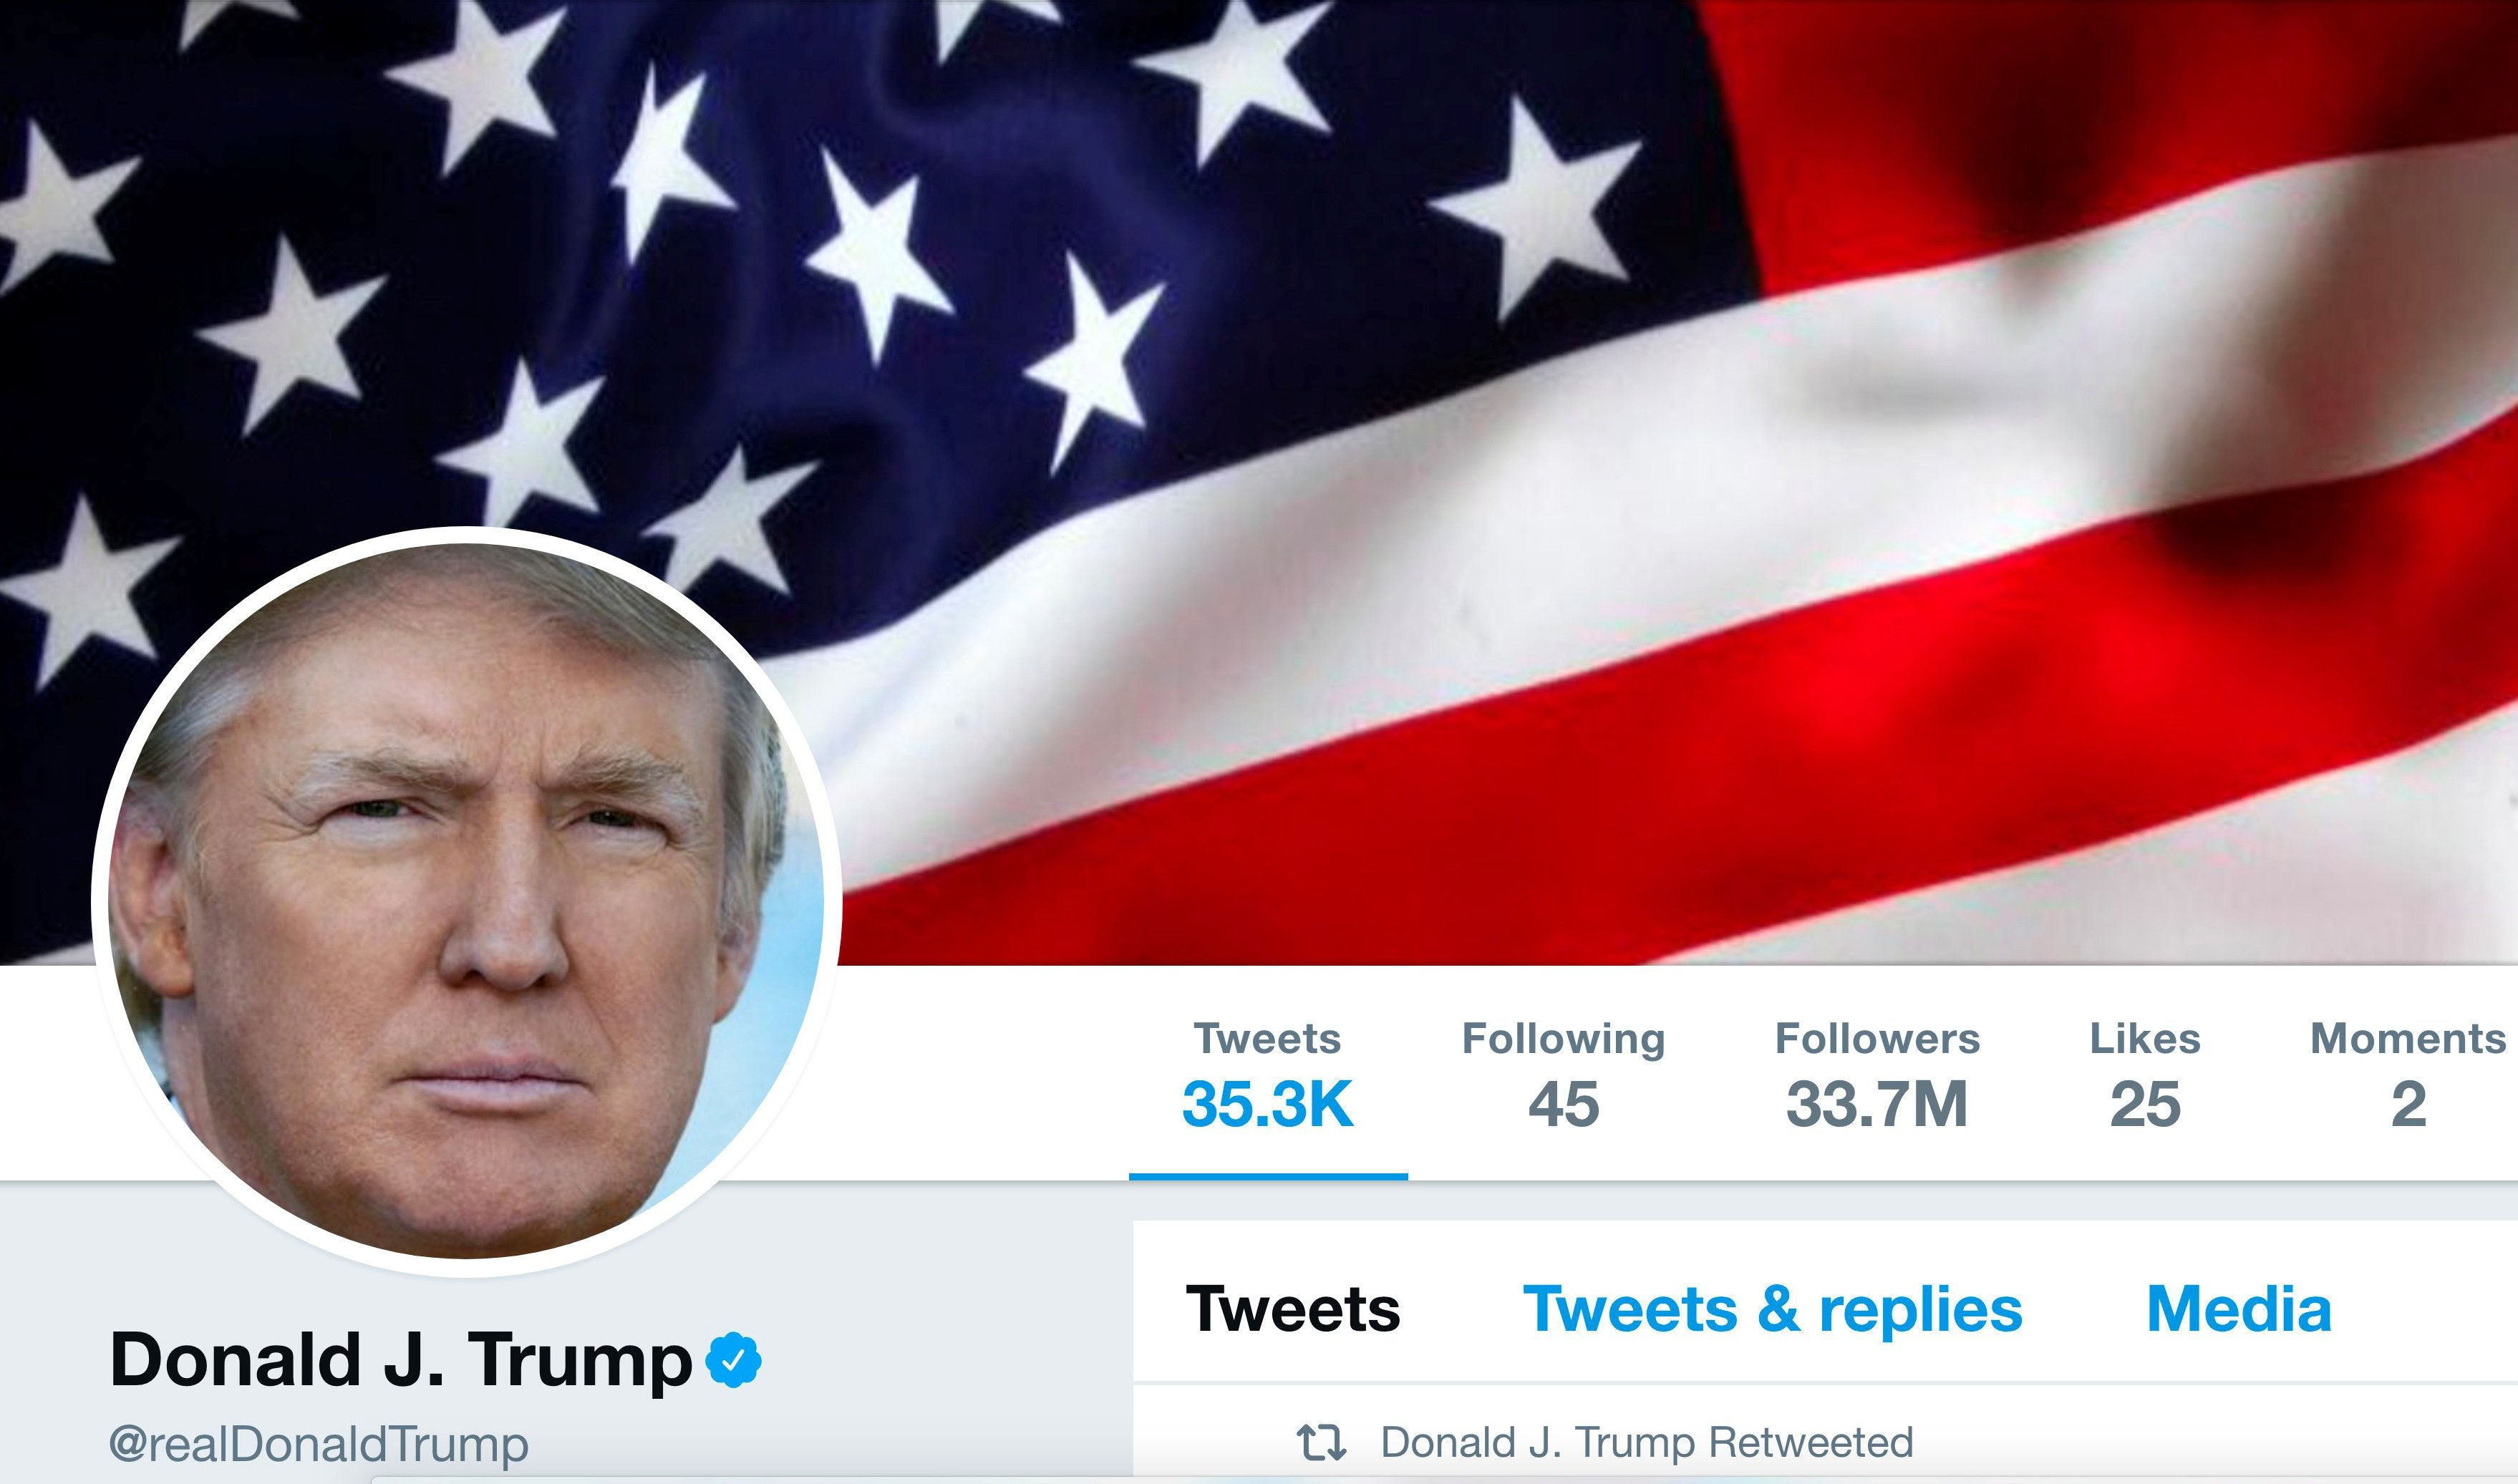 Lawsuit: President Trump unjustly blocks Twitter critics